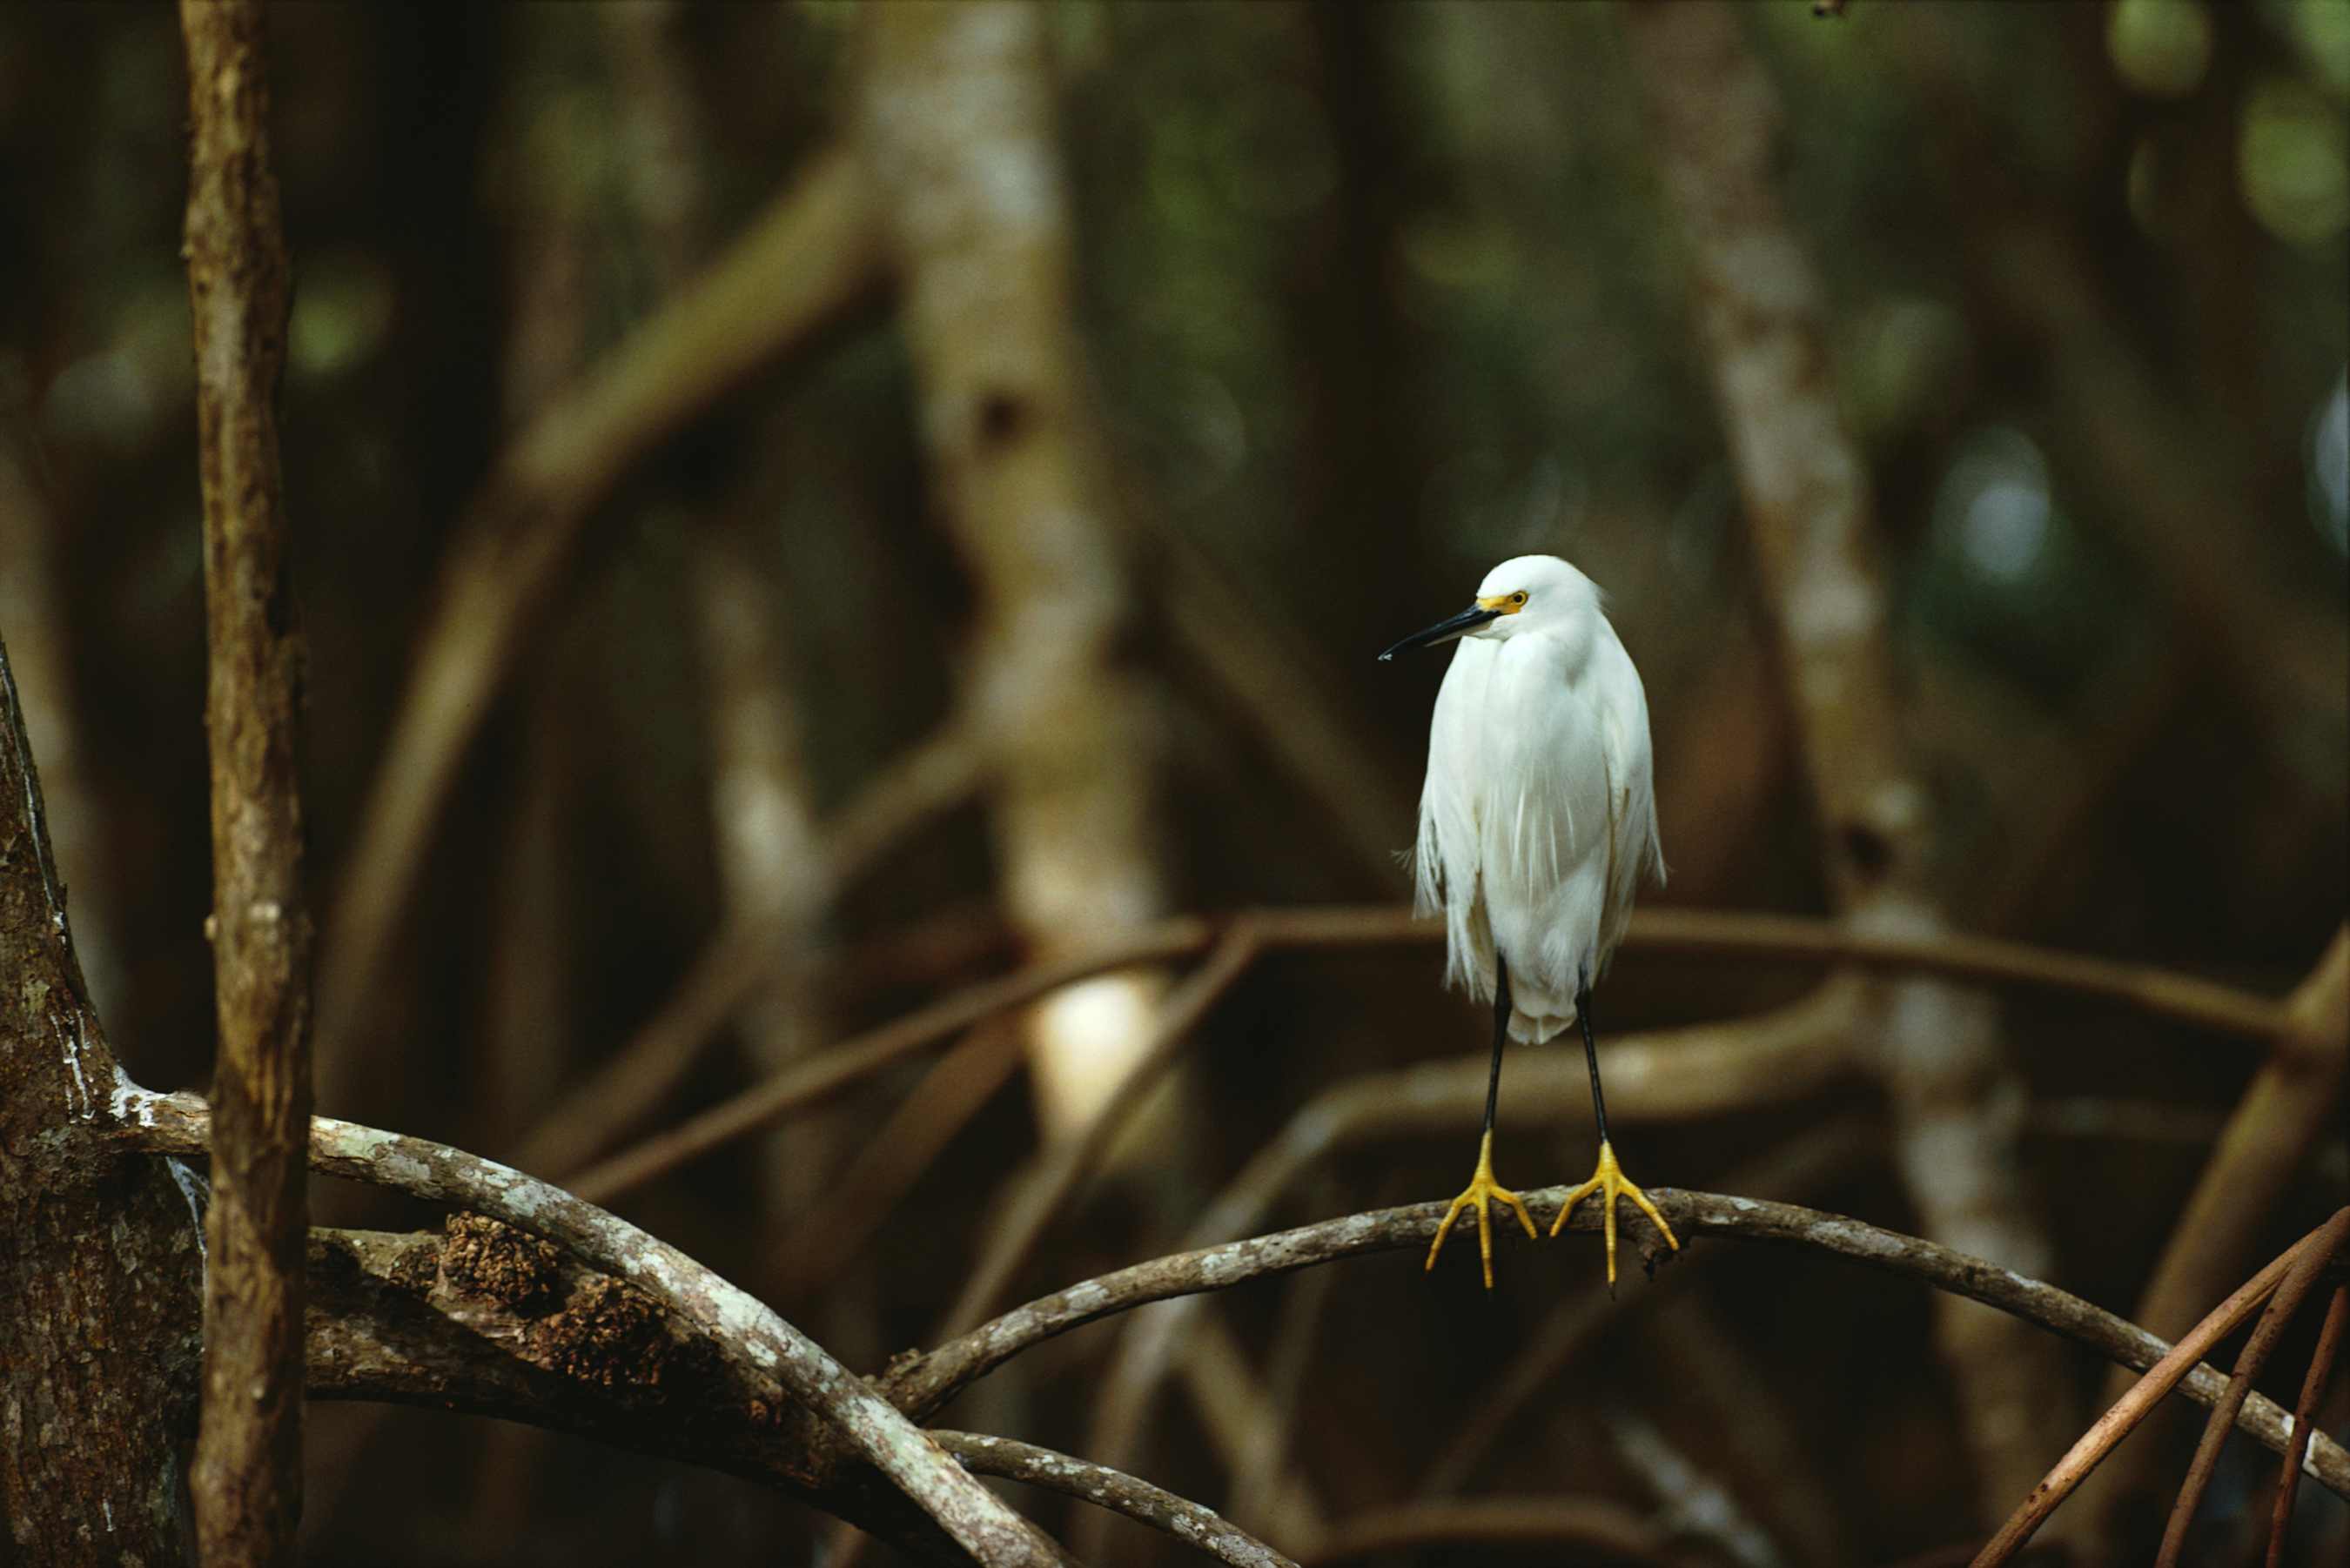 Birds Florida national park HD Wallpaper